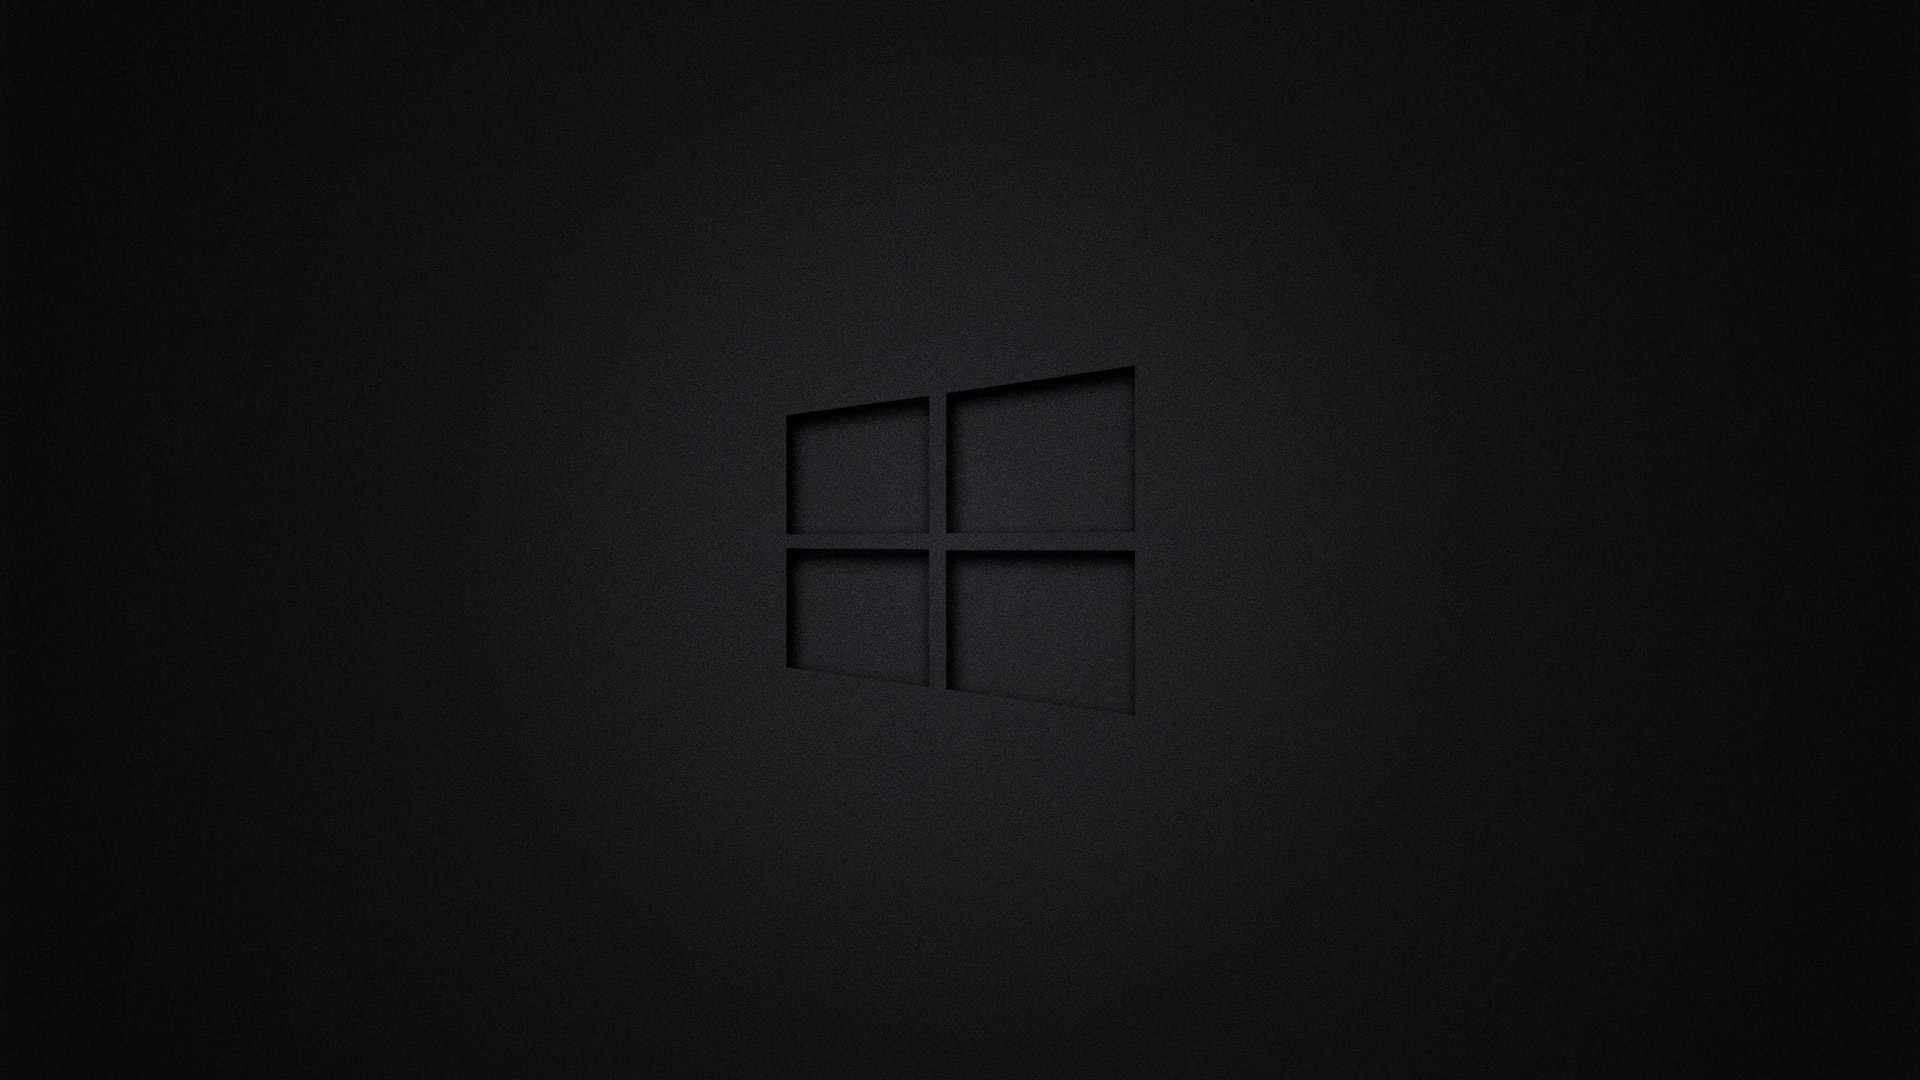 group of dark windows hd wallpaper 1920x1080